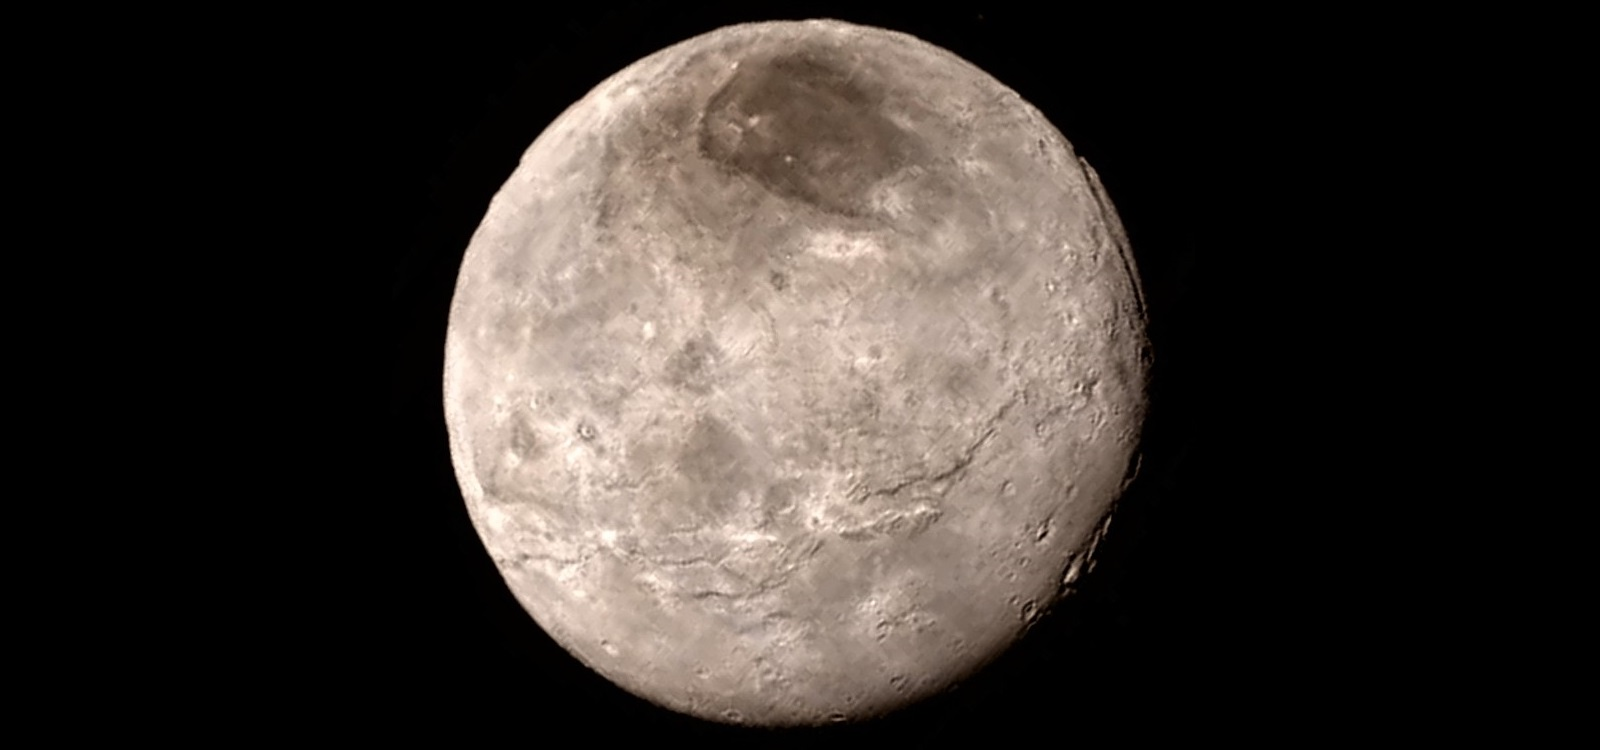 Charon in natural color